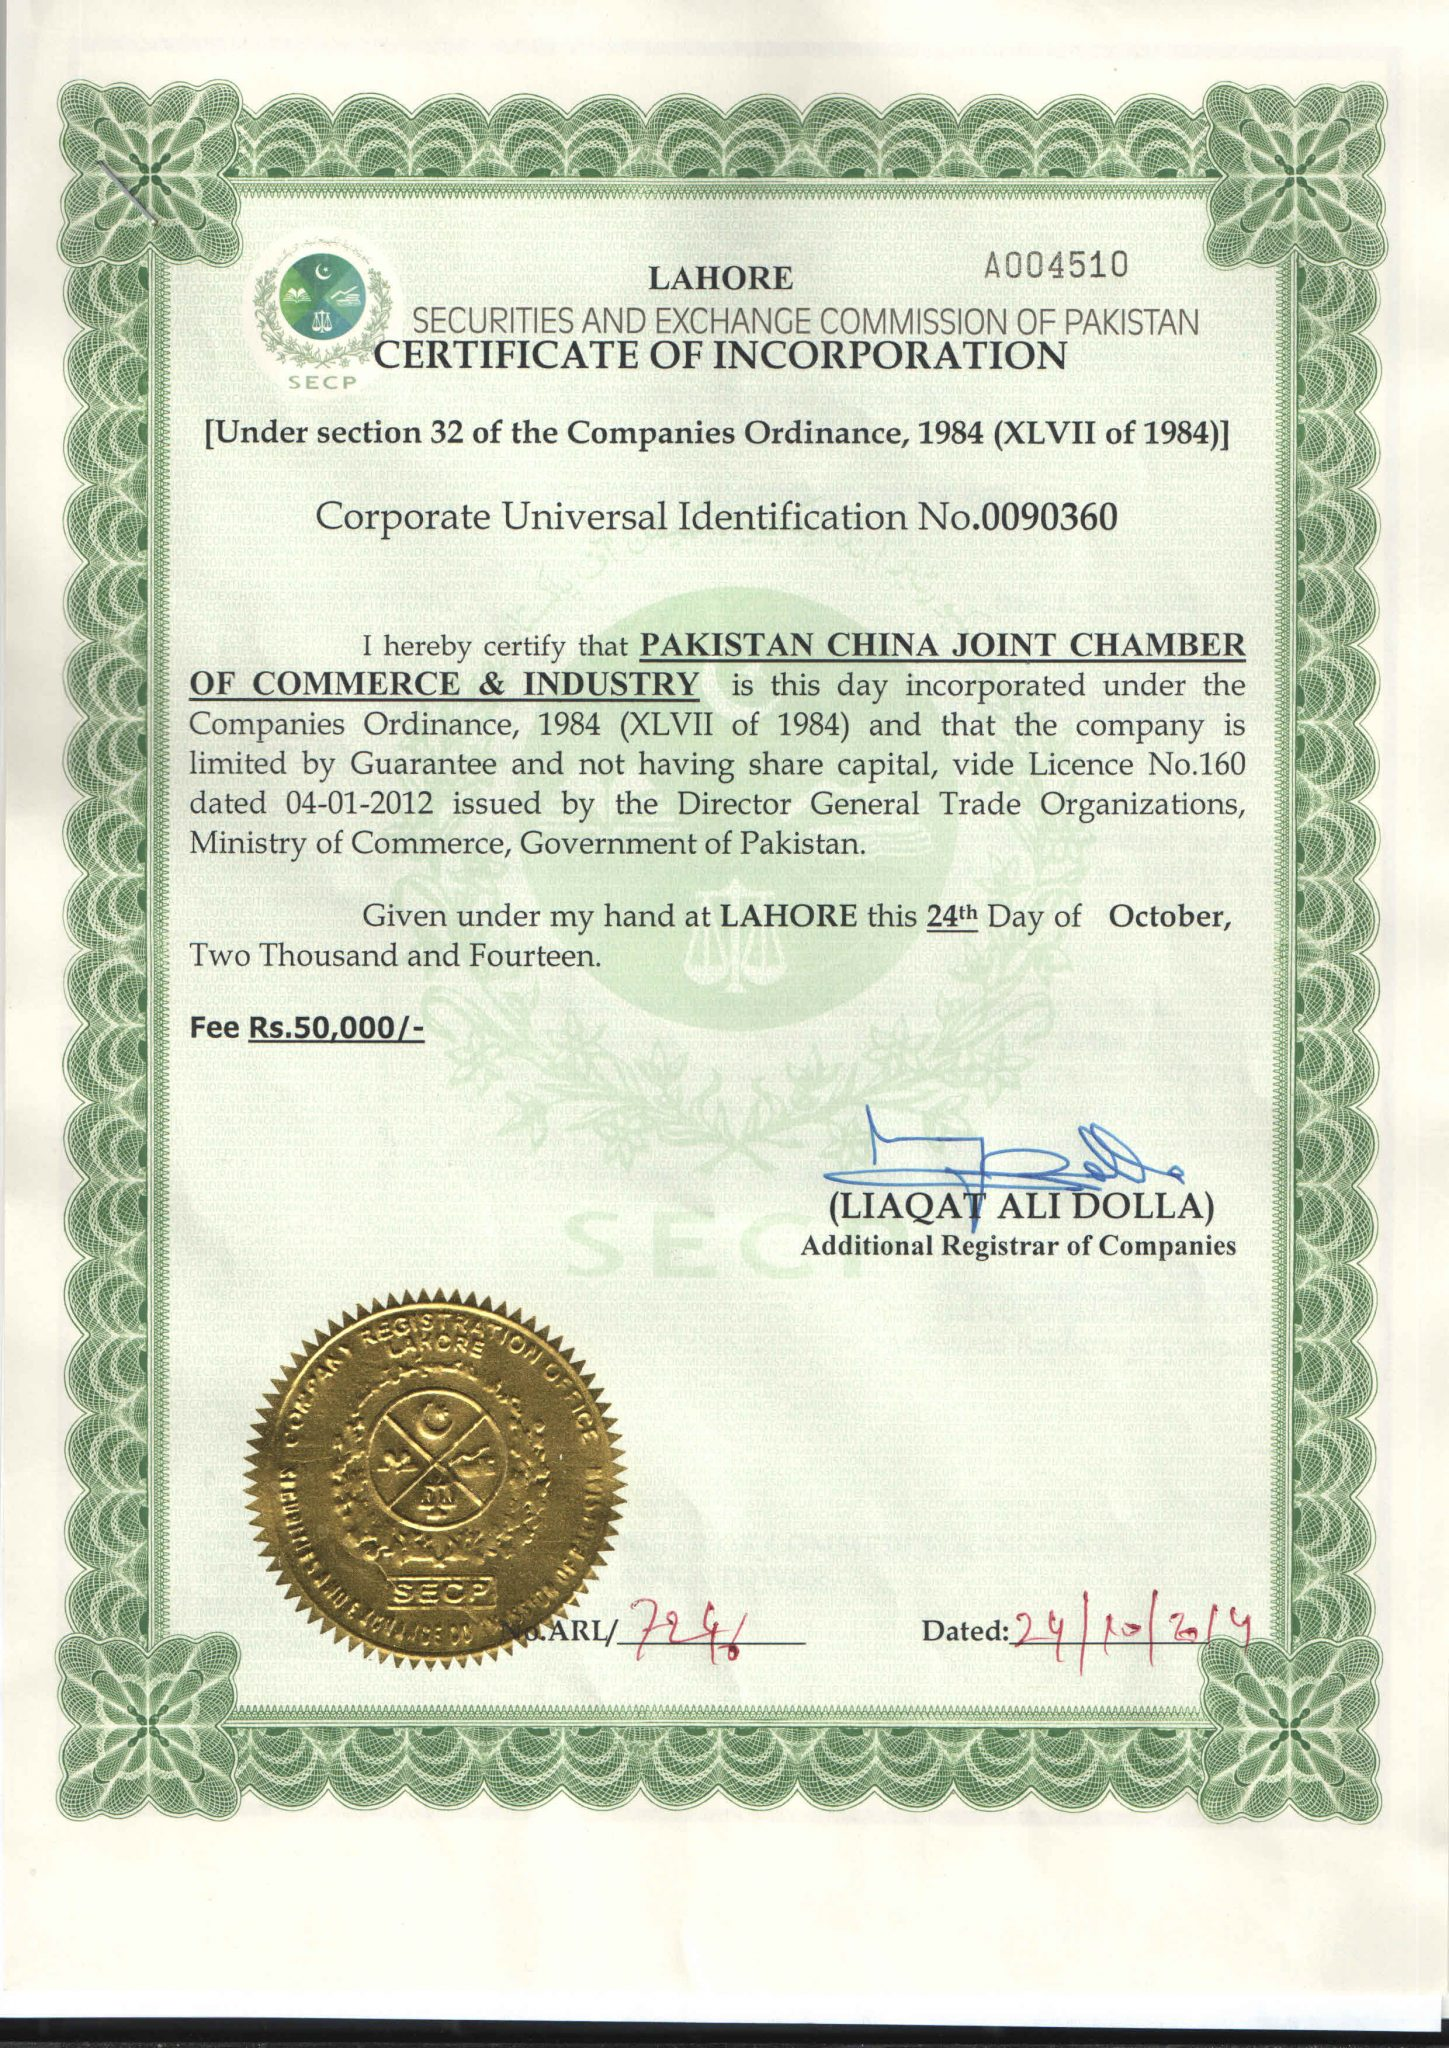 Incorporation Certificate of PCJCCI